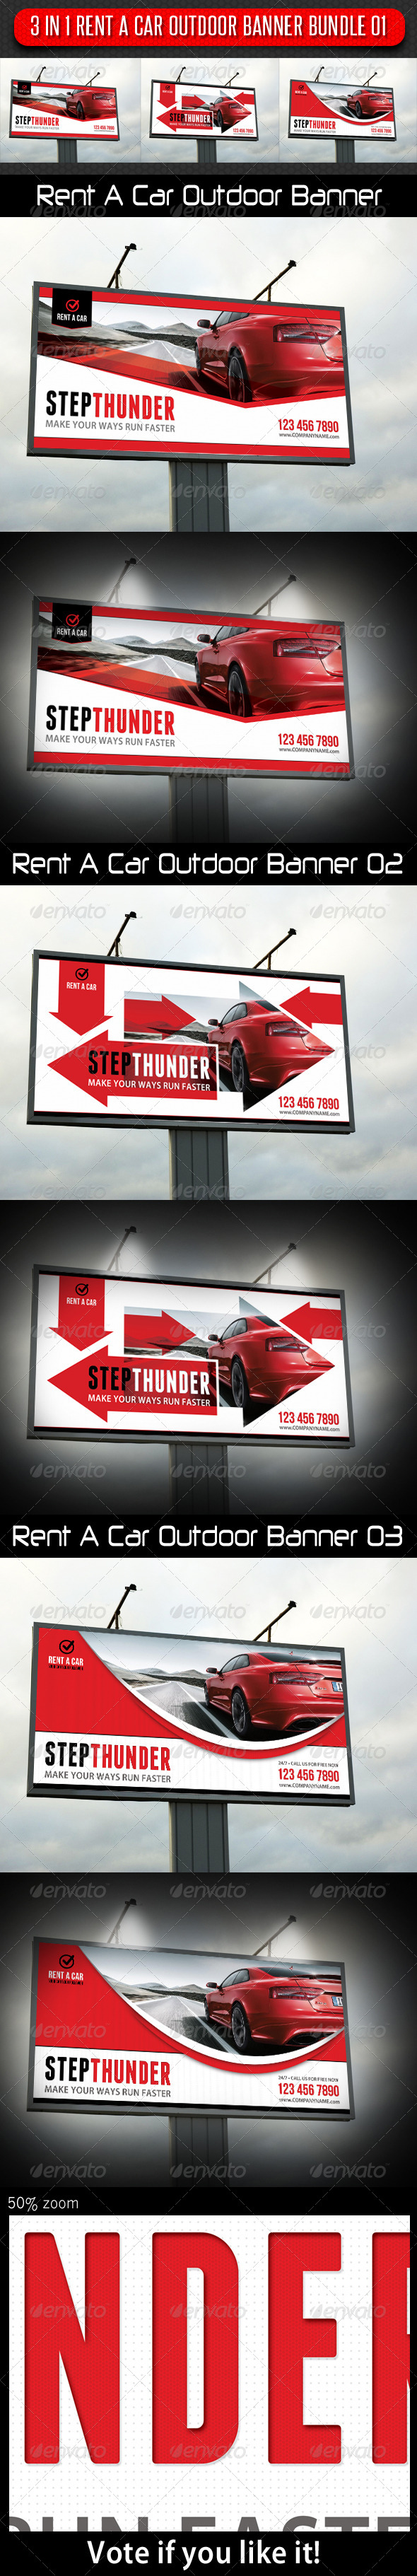 3 in 1 Rent A Car Outdoor Banner Bundle 01 - Signage Print Templates